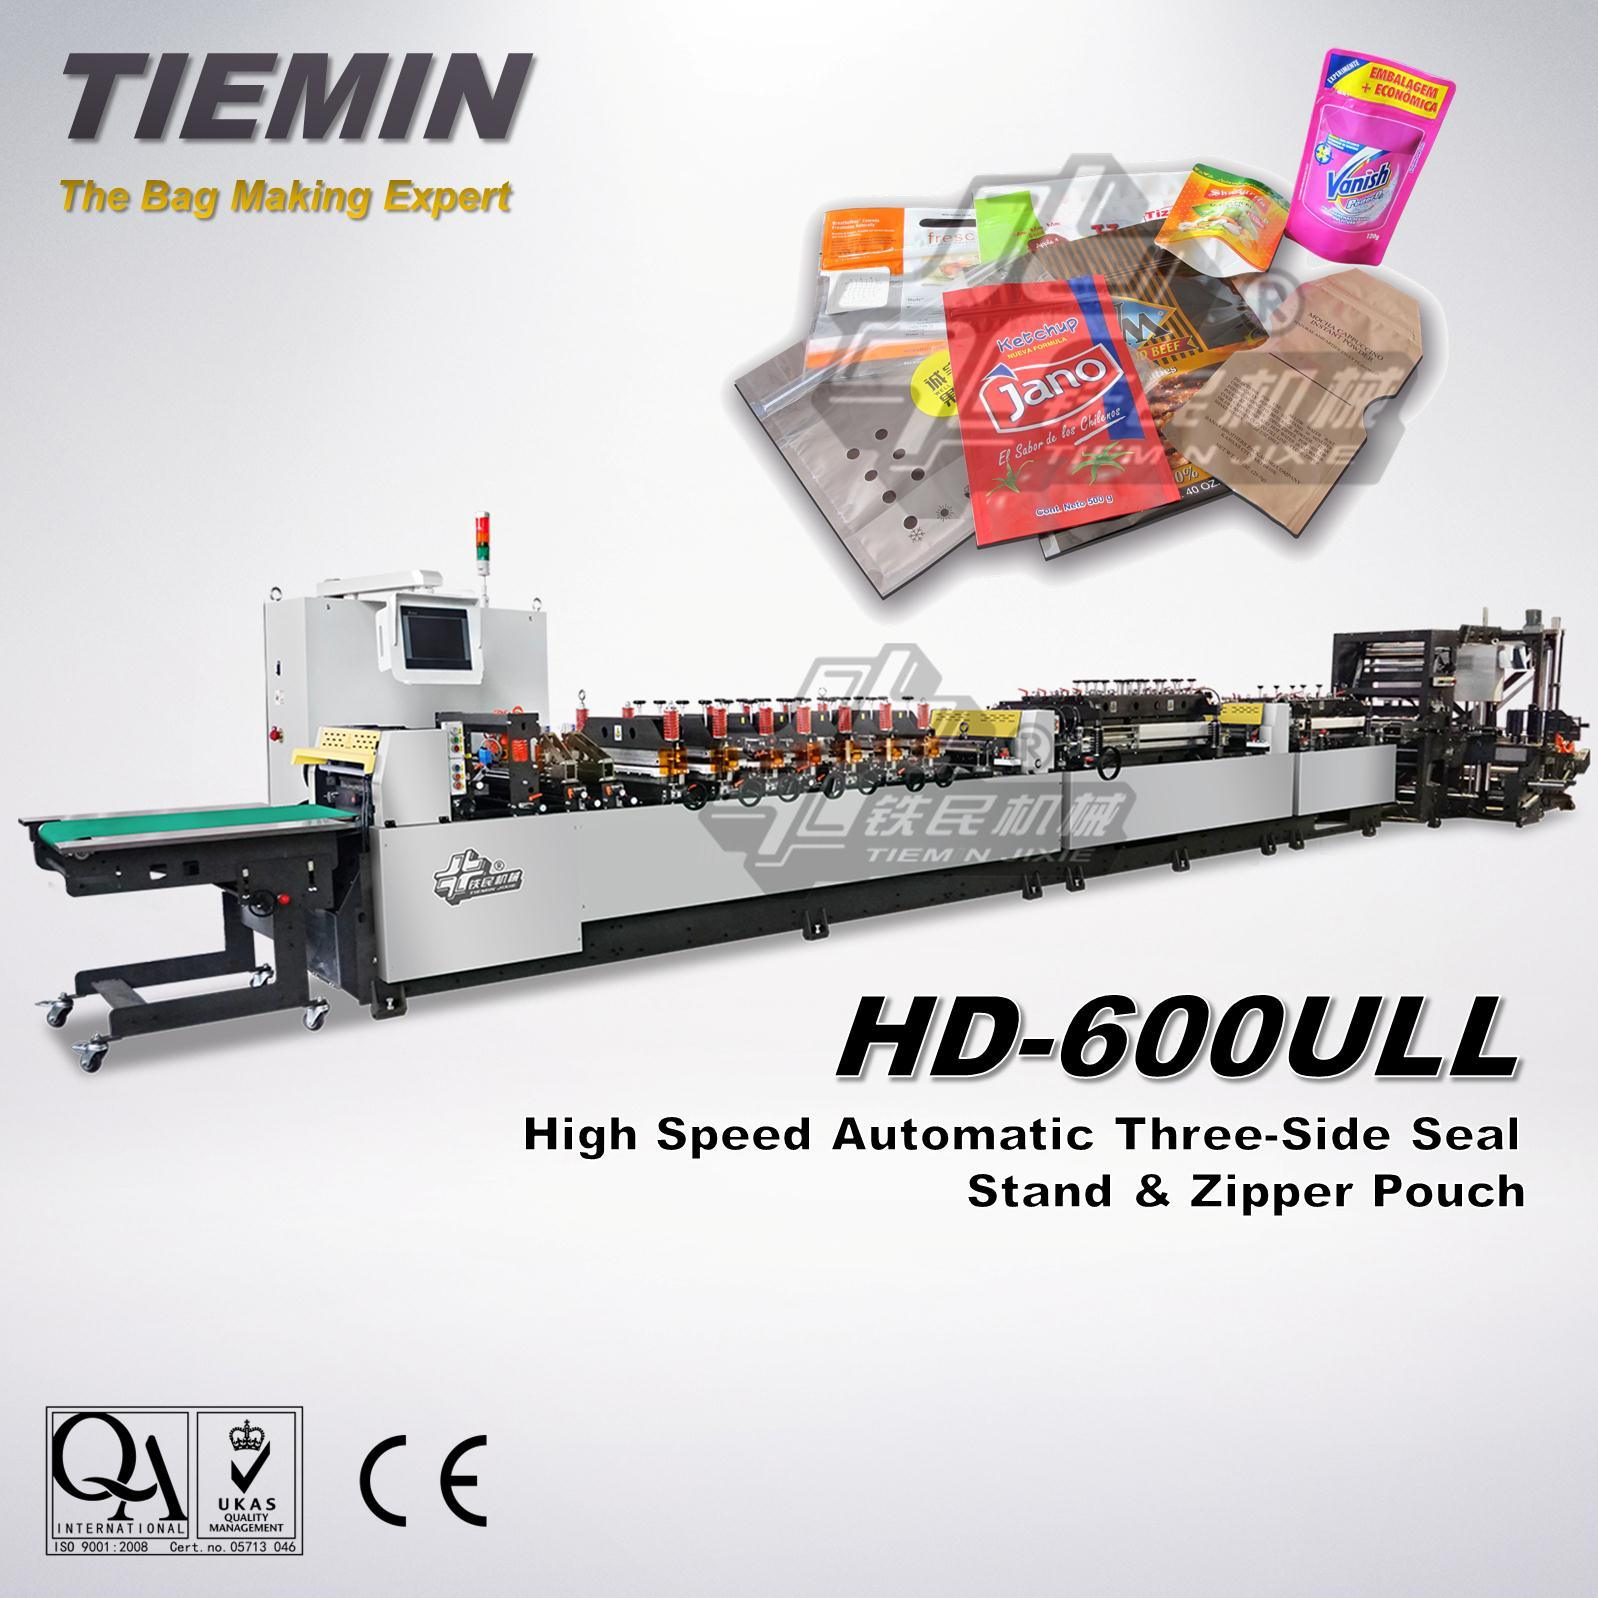 Tiemin High Speed Automatic Three Side Seal Stand and Zipper Bag & Pouch Making Machine Machine HD-600ull